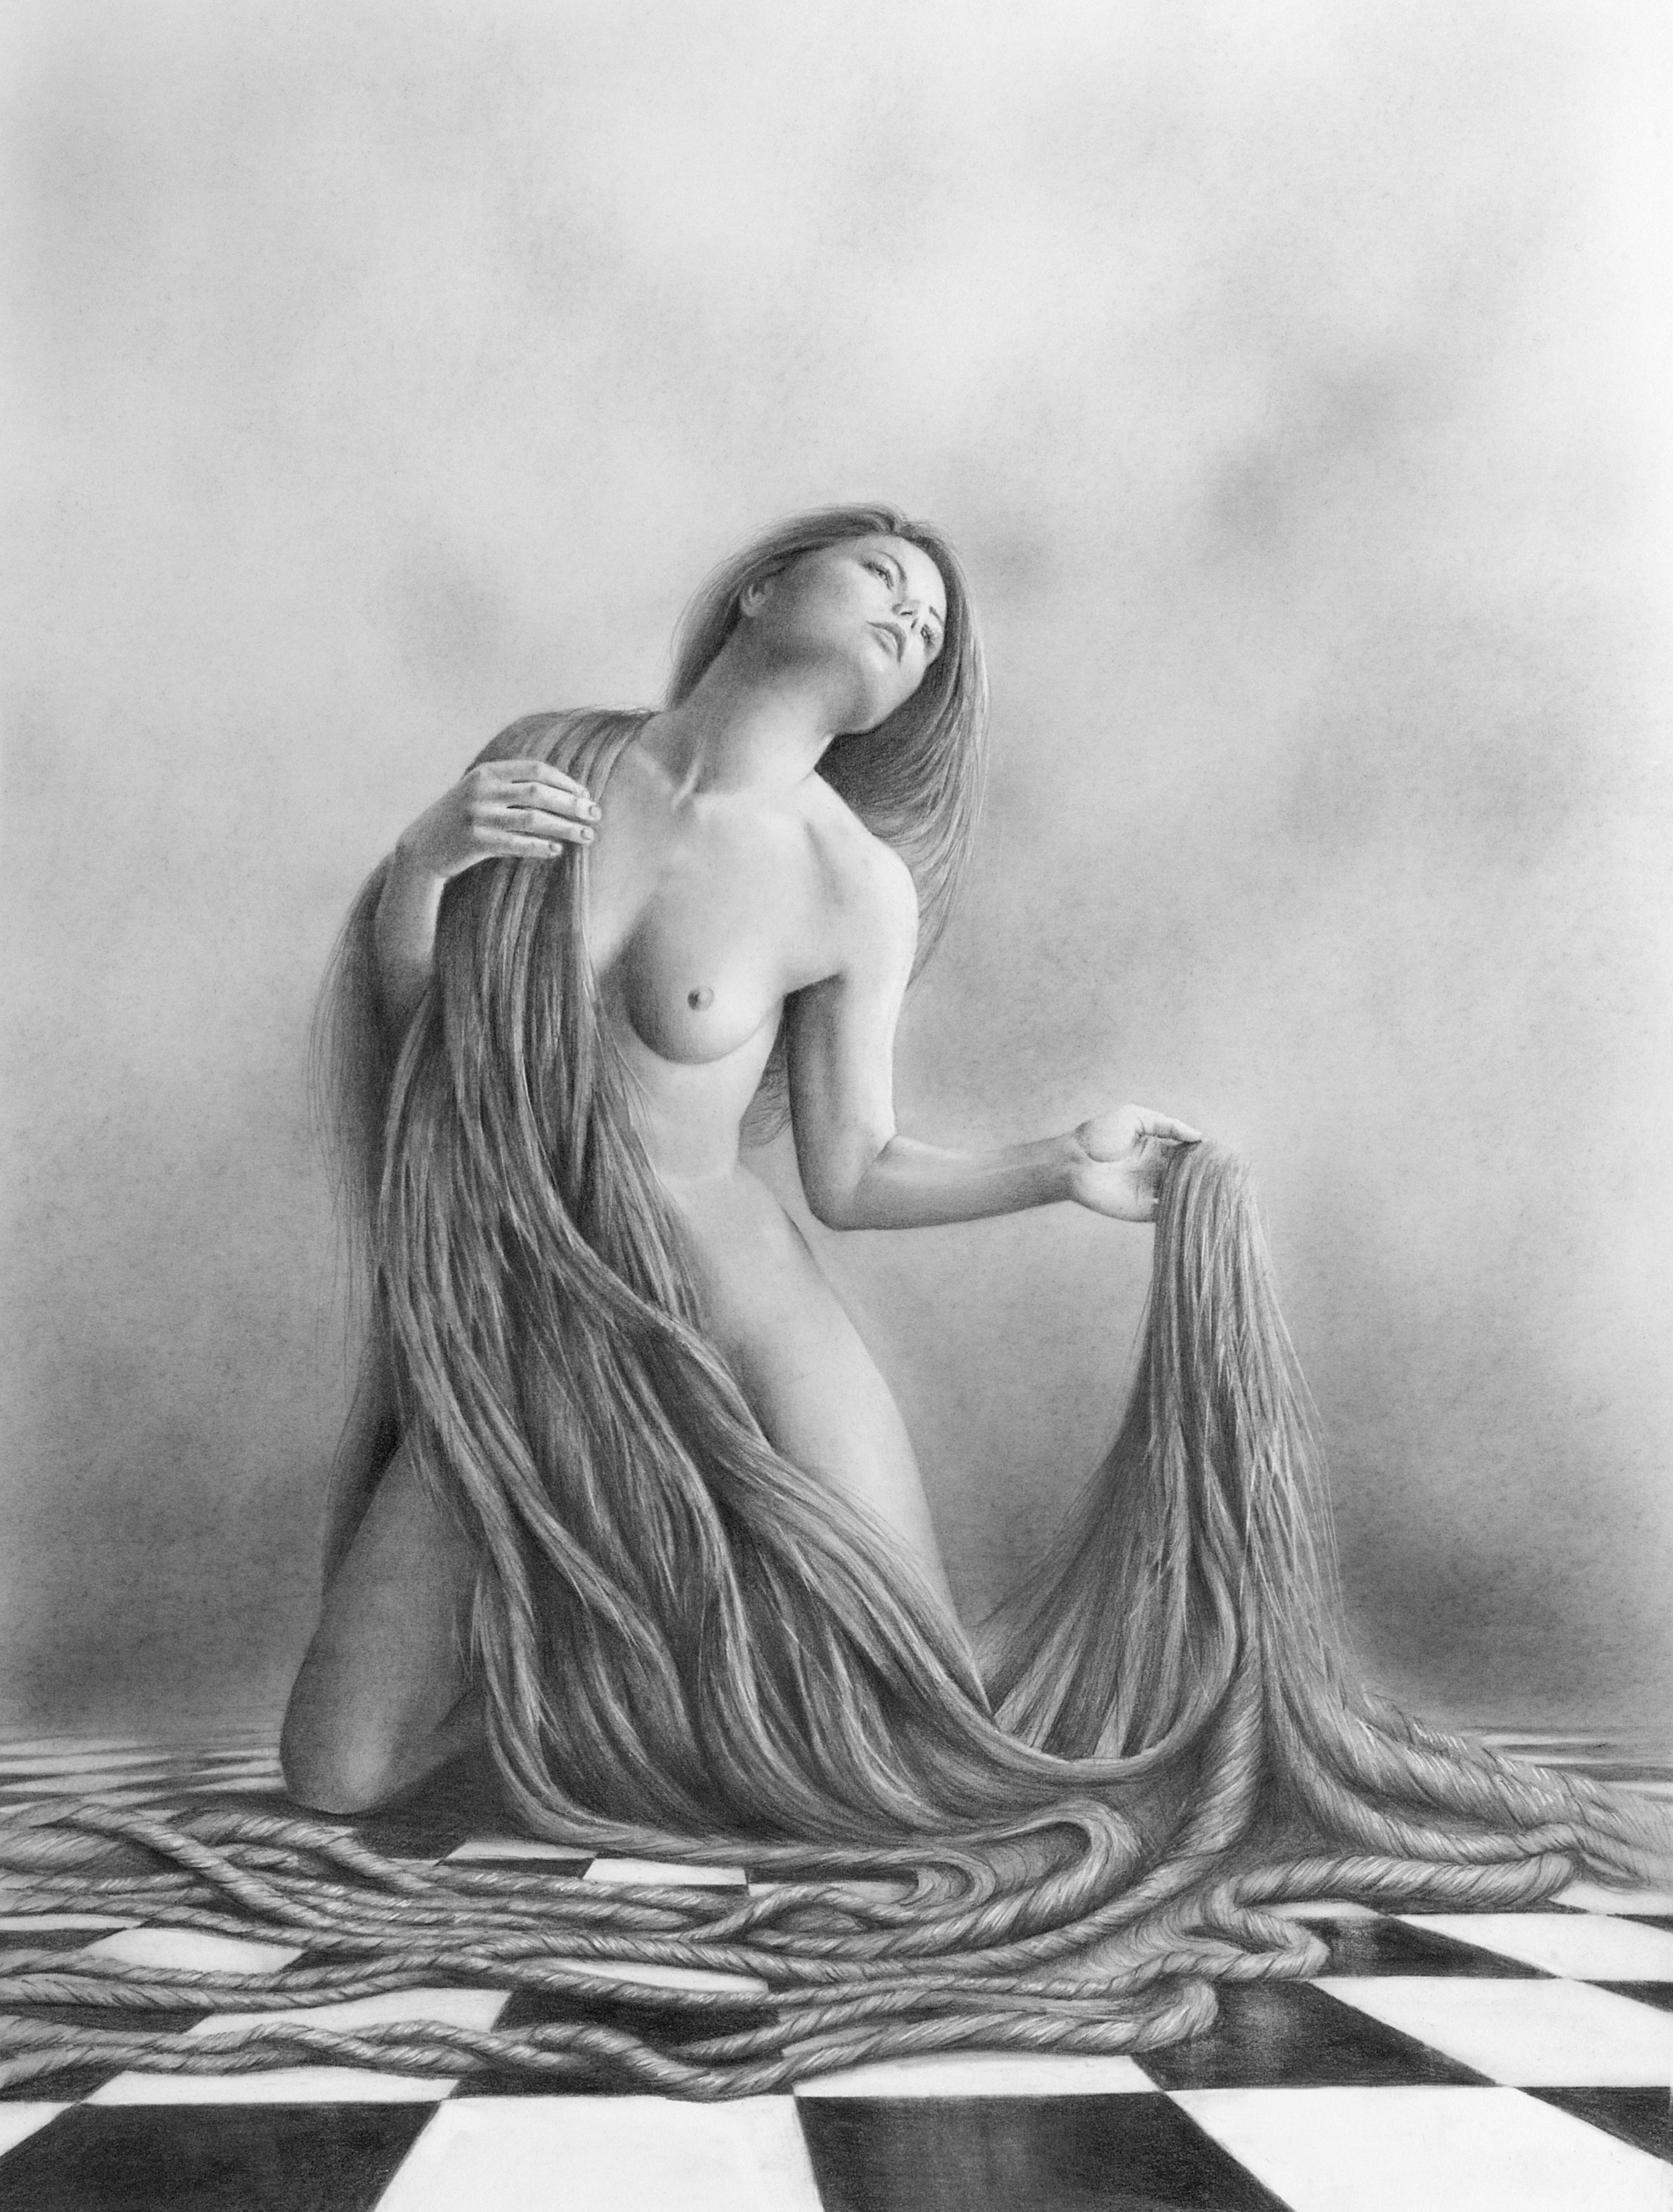 Delilah's remorse-bill-higginson-artist-graphite-drawing-realism-black-and-white